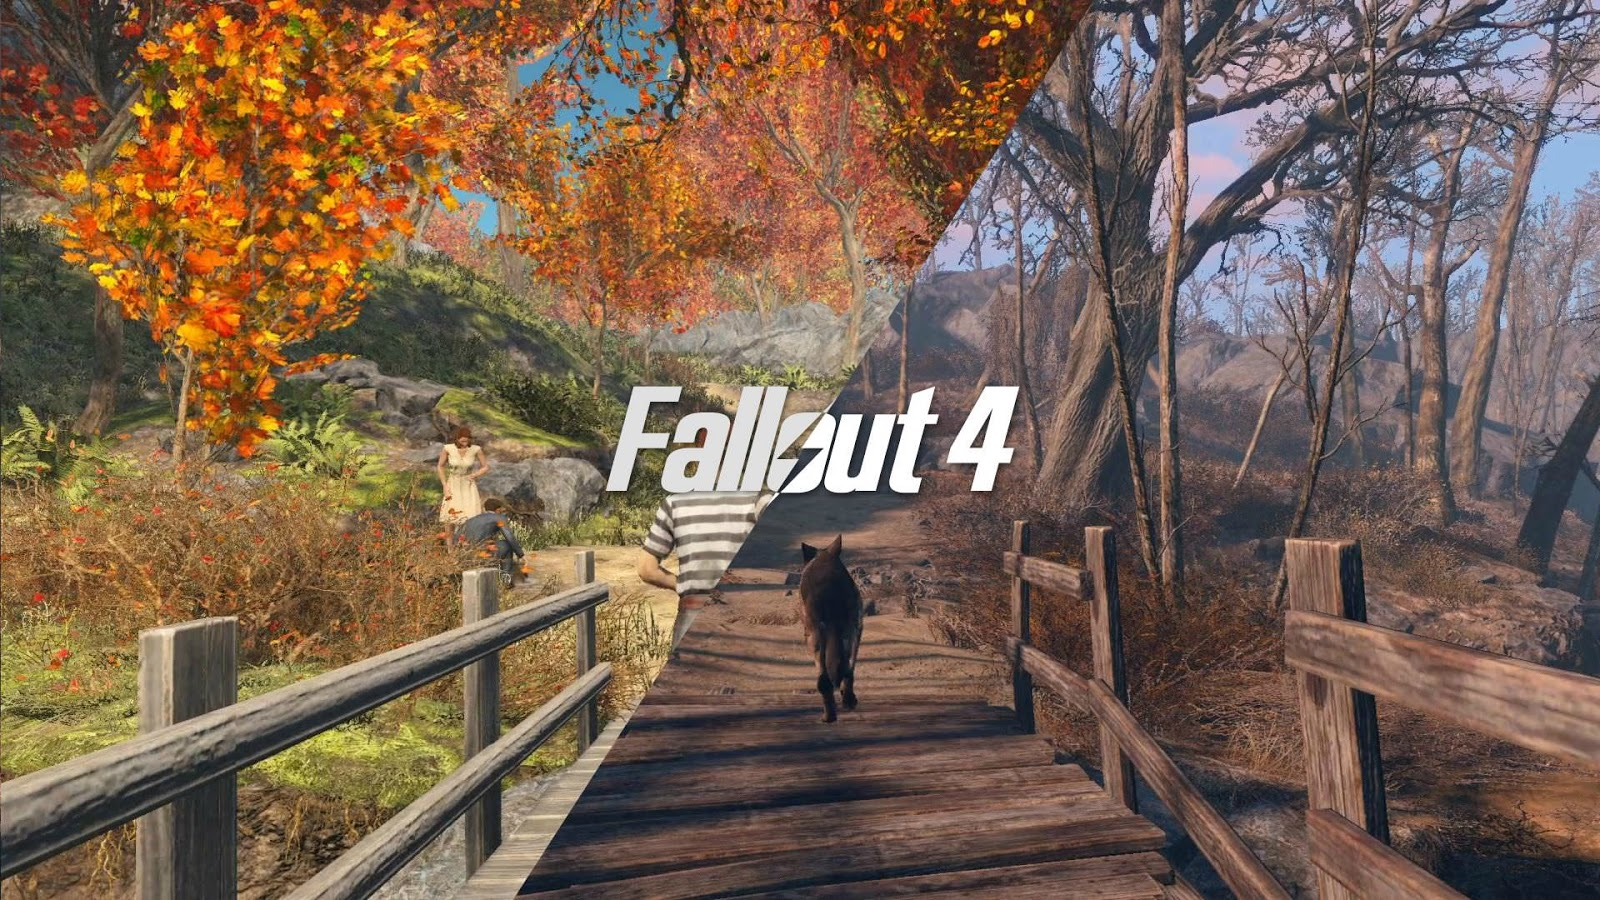 Fallout 4 Windows 10 Wallpapers